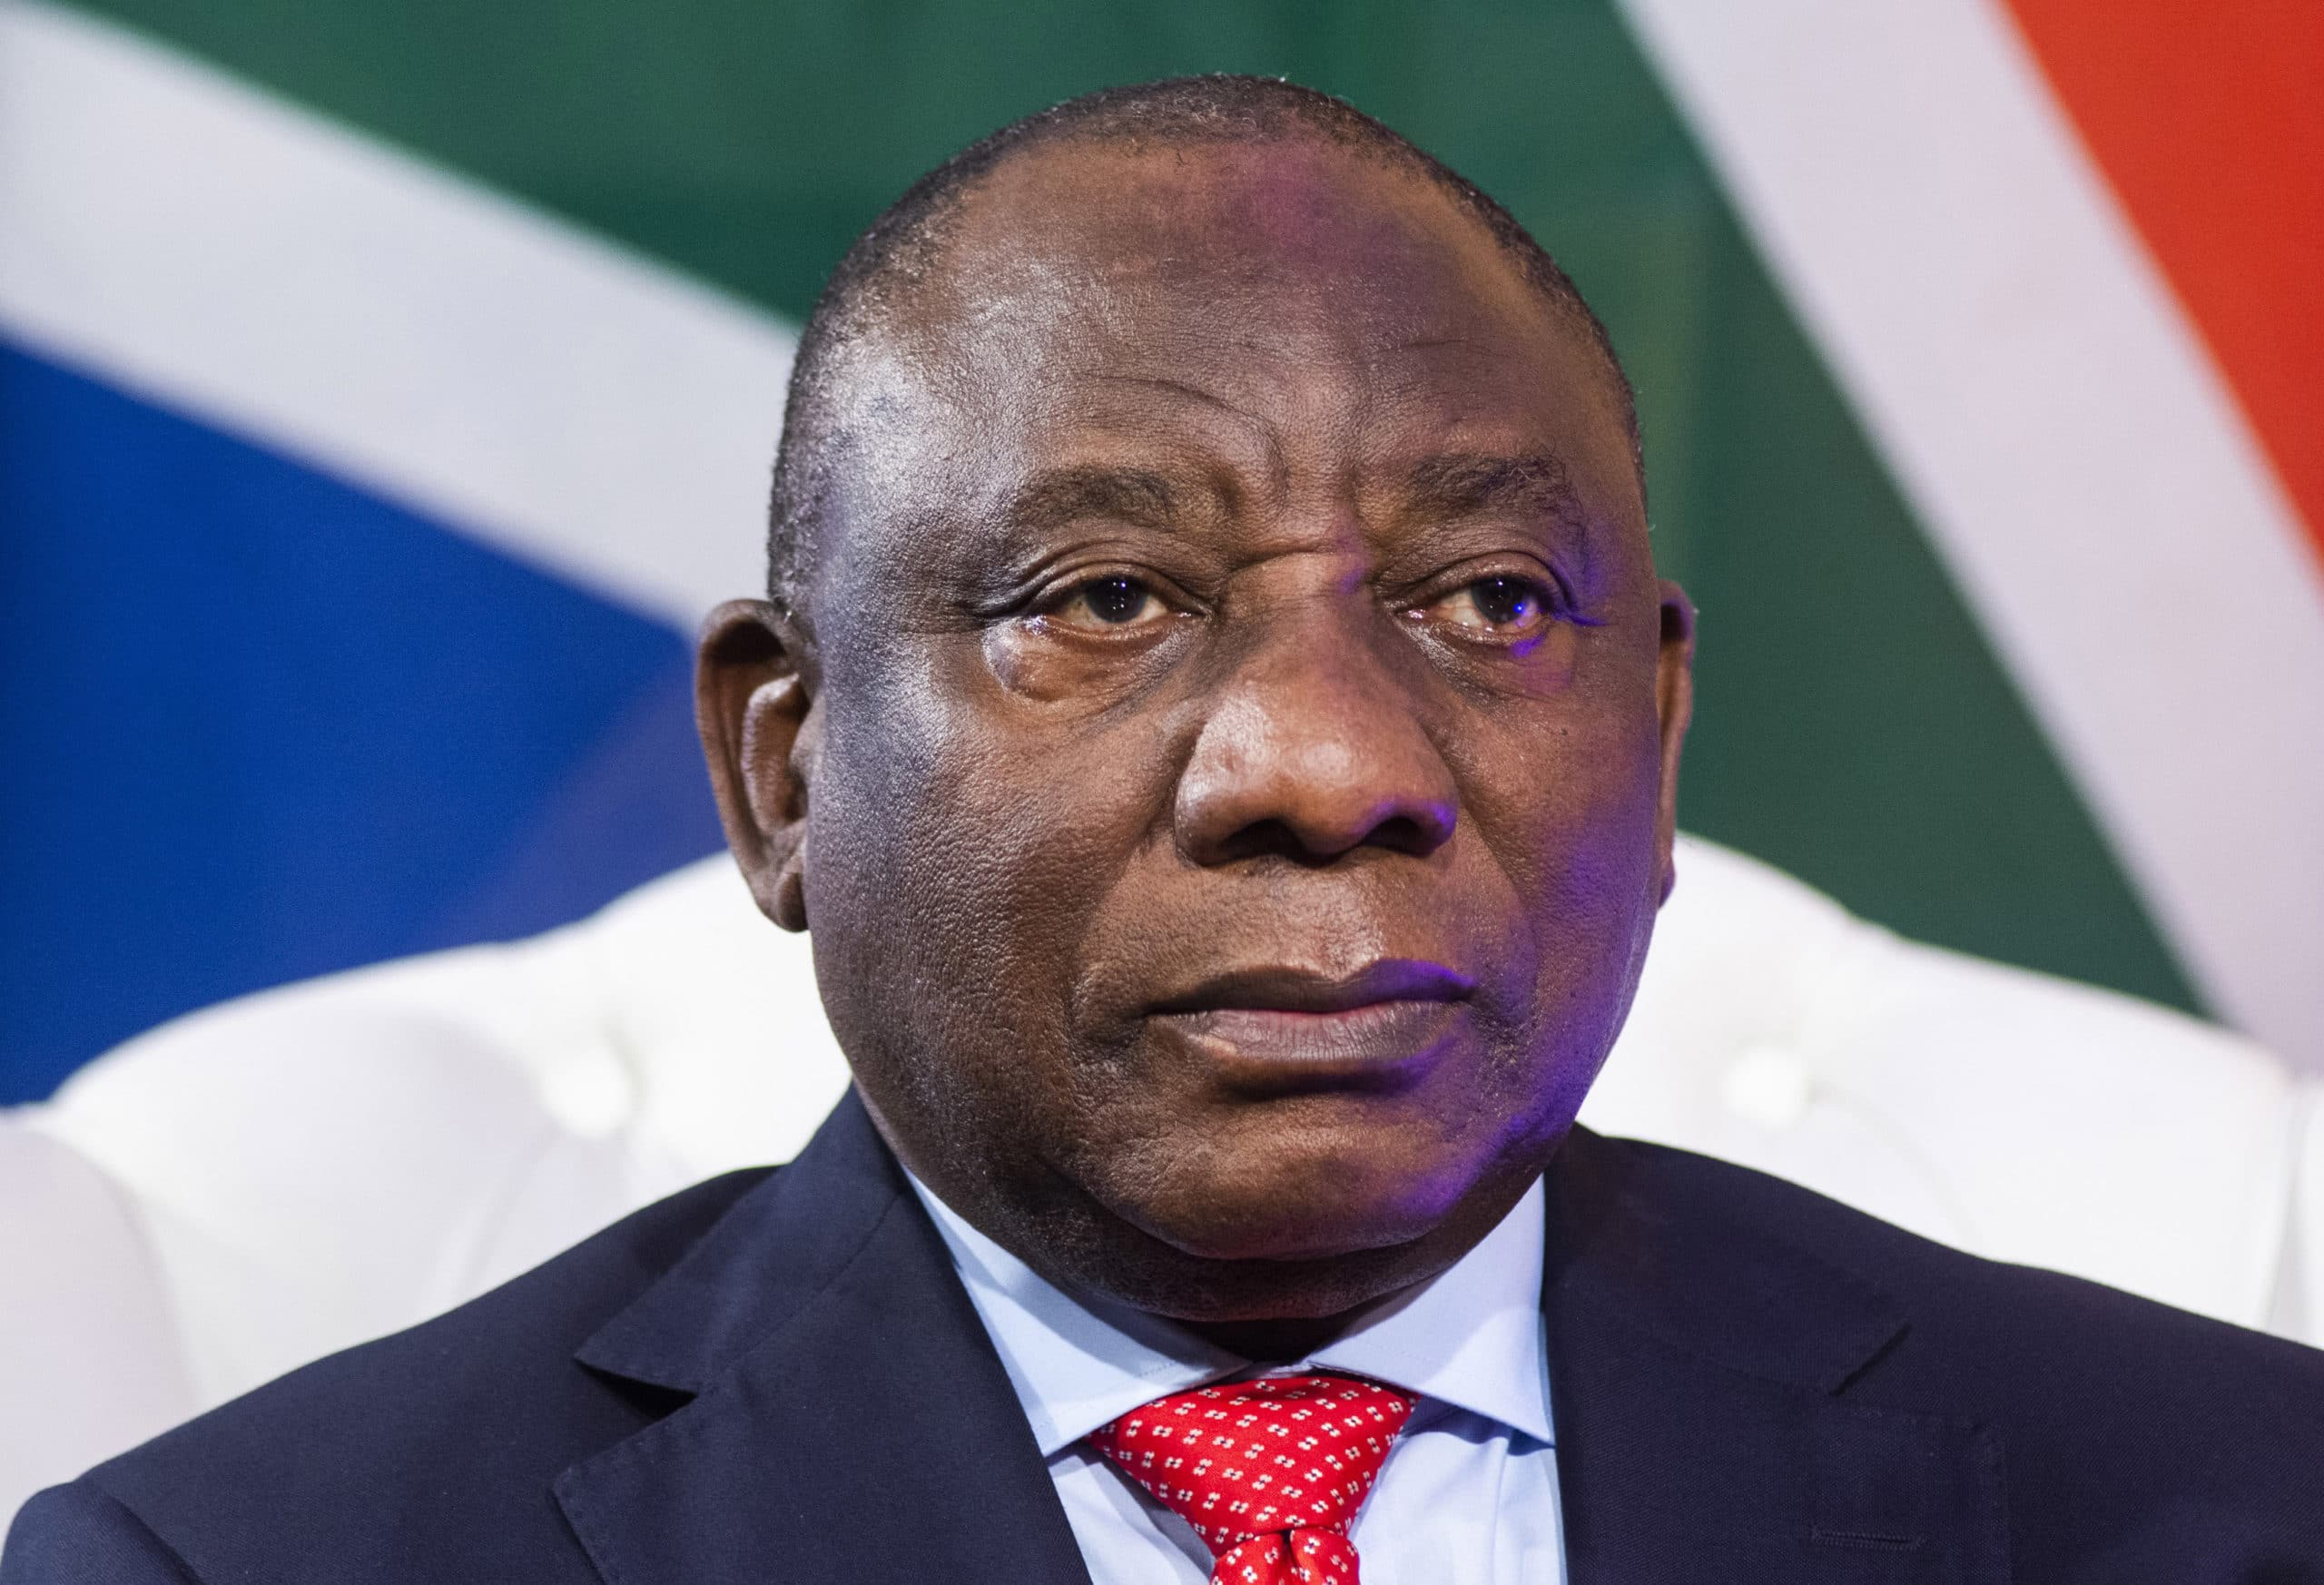 Interview with South Africa's President Ramaphosa